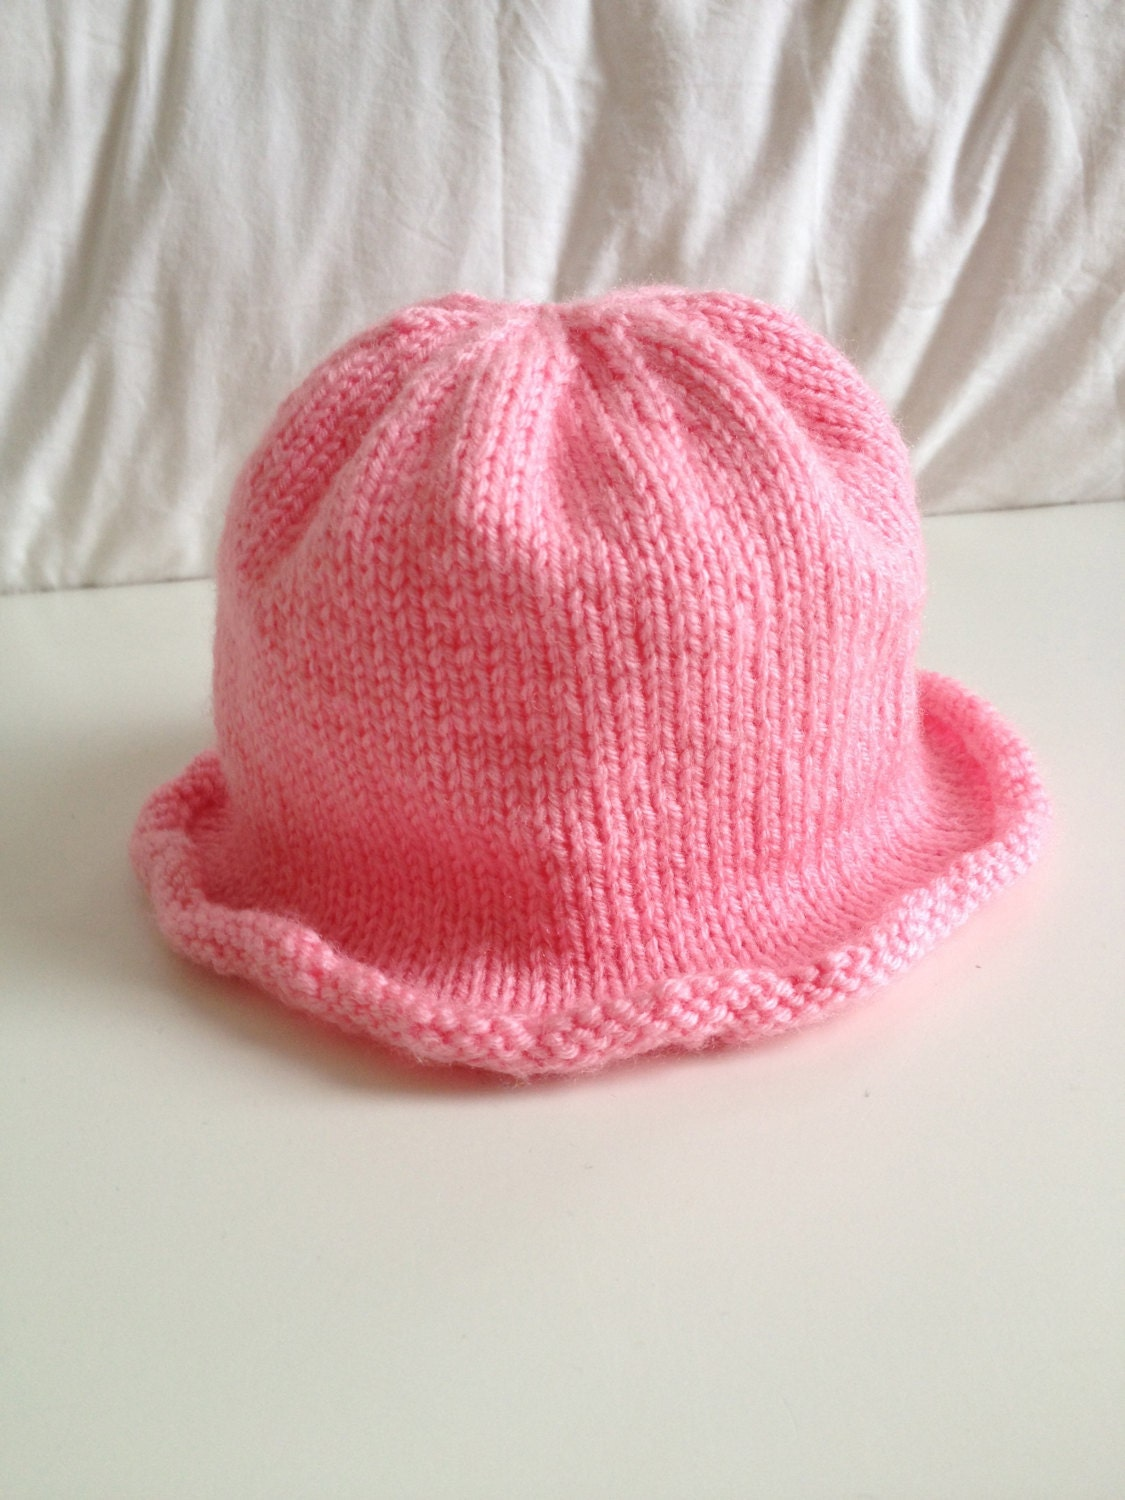 Knitting Pattern For Baby Sun Hat : Baby Sun Hat Knitting Pattern PDF